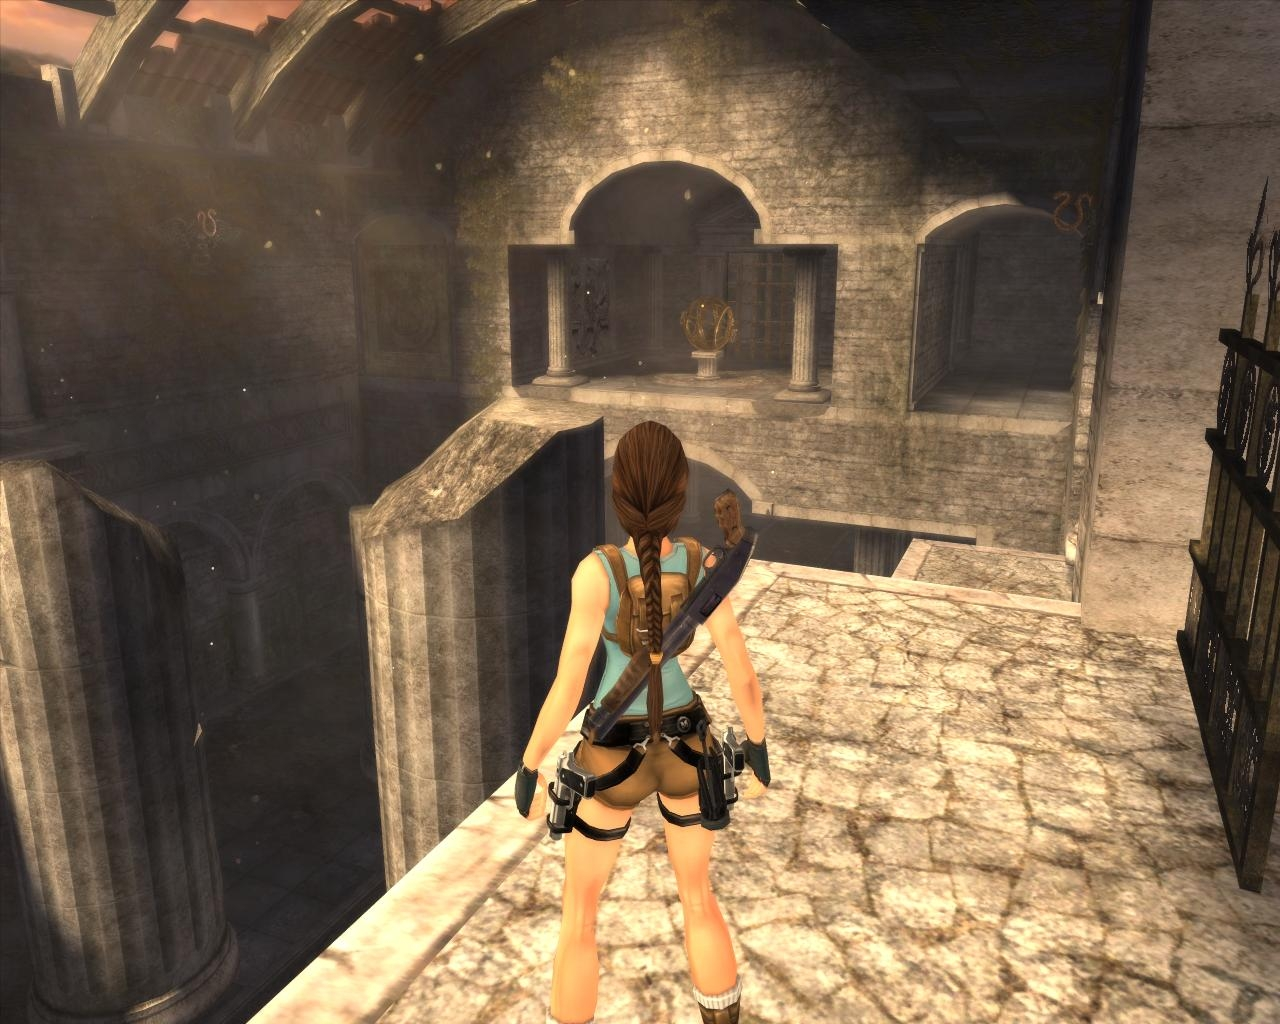 Tomb raider anniversary nute patch naked galleries